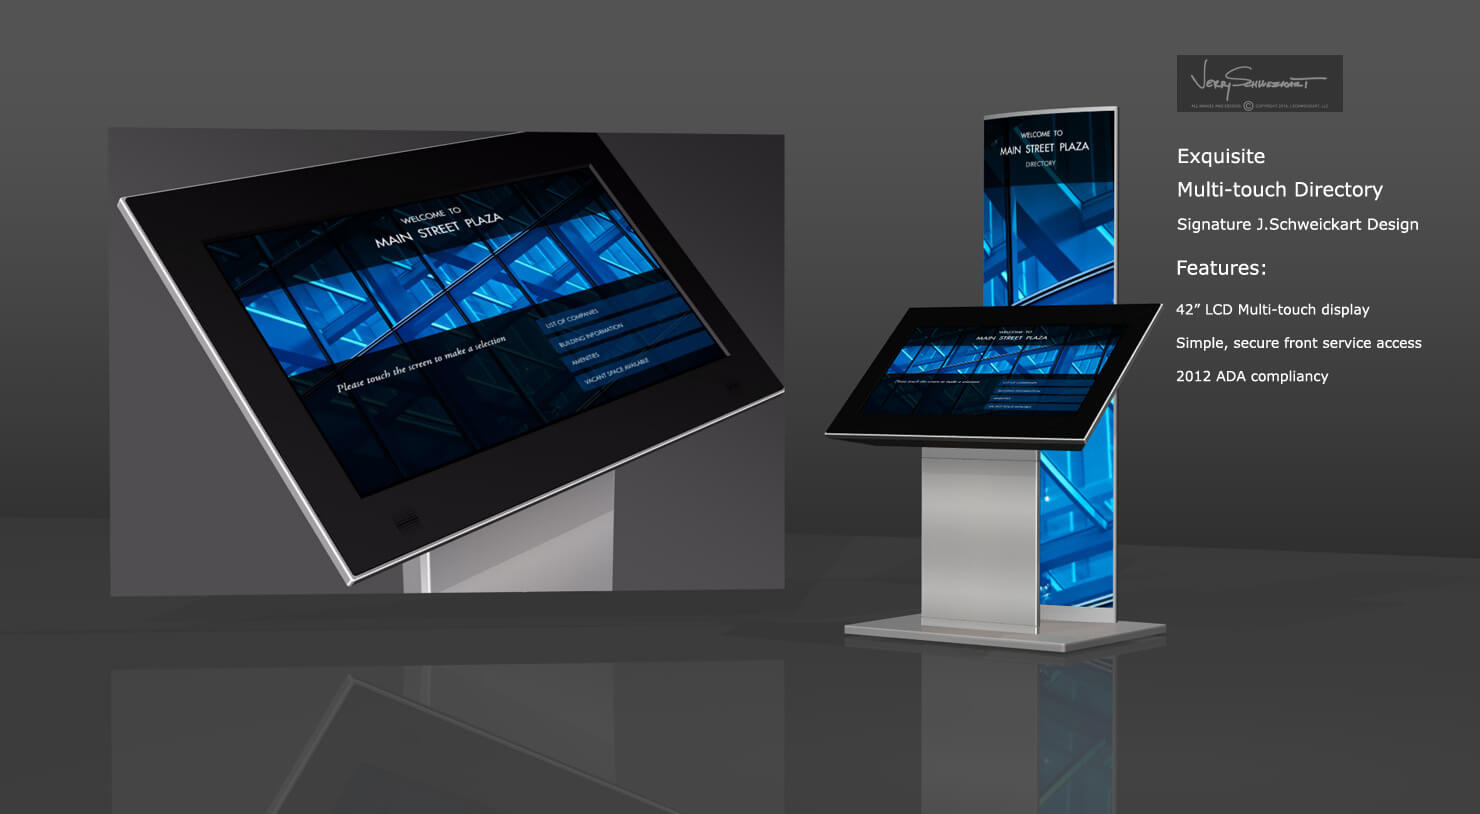 Exquisite Multi-Touch Directory with Back-lit signage tower Designed by Industrial Designer Jer Schweickart